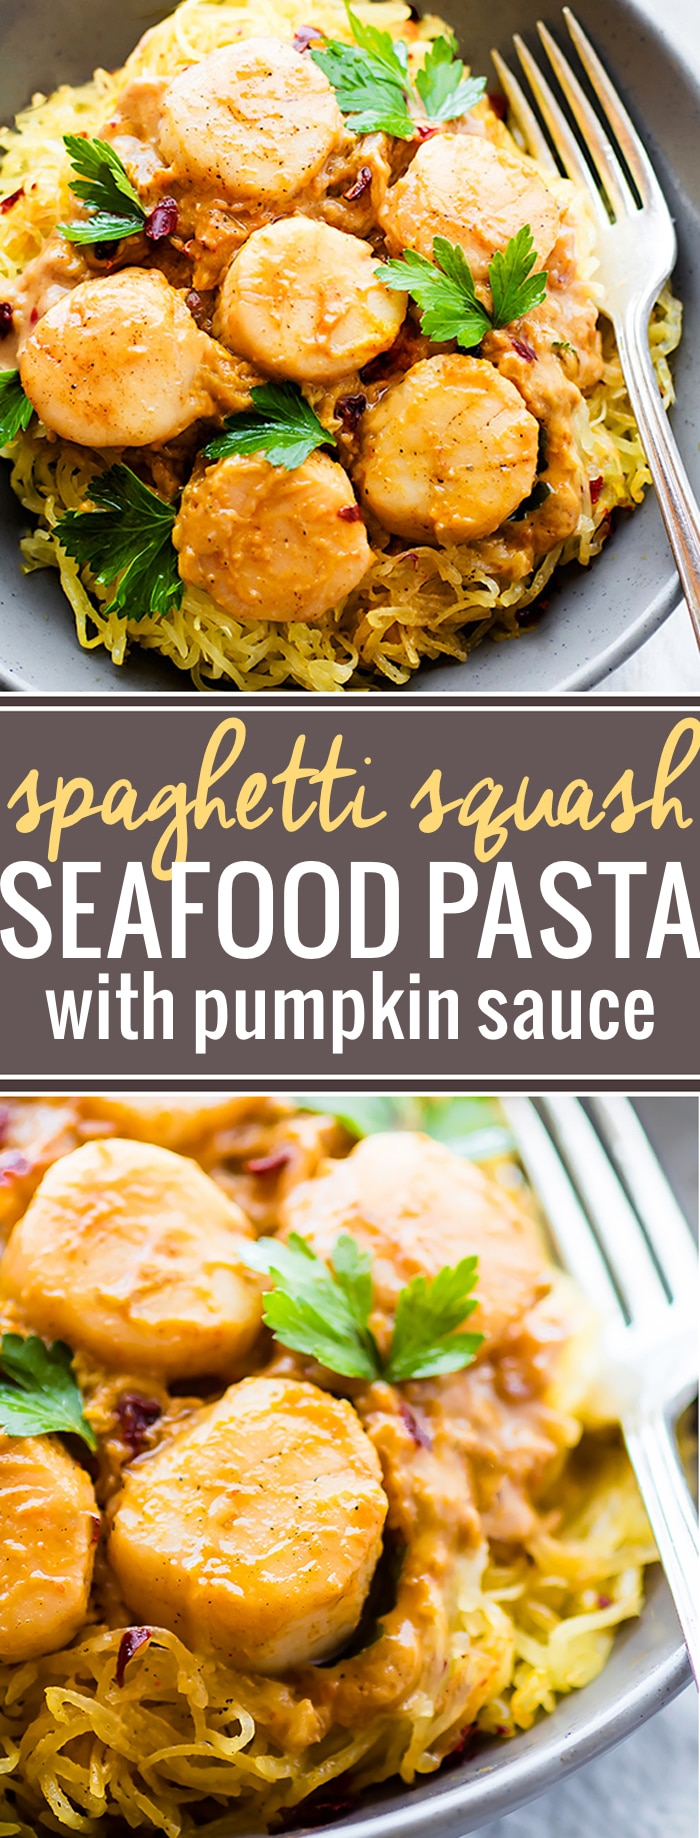 Spaghetti Squash Pasta makes for an easy paleo pasta alternative! This gluten free Seafood Pumpkin Spaghetti Squash Pasta is topped with a miso pumpkin sauce and buttery scallops. A healthy lighter version of your favorite pasta dish.@cottercrunch